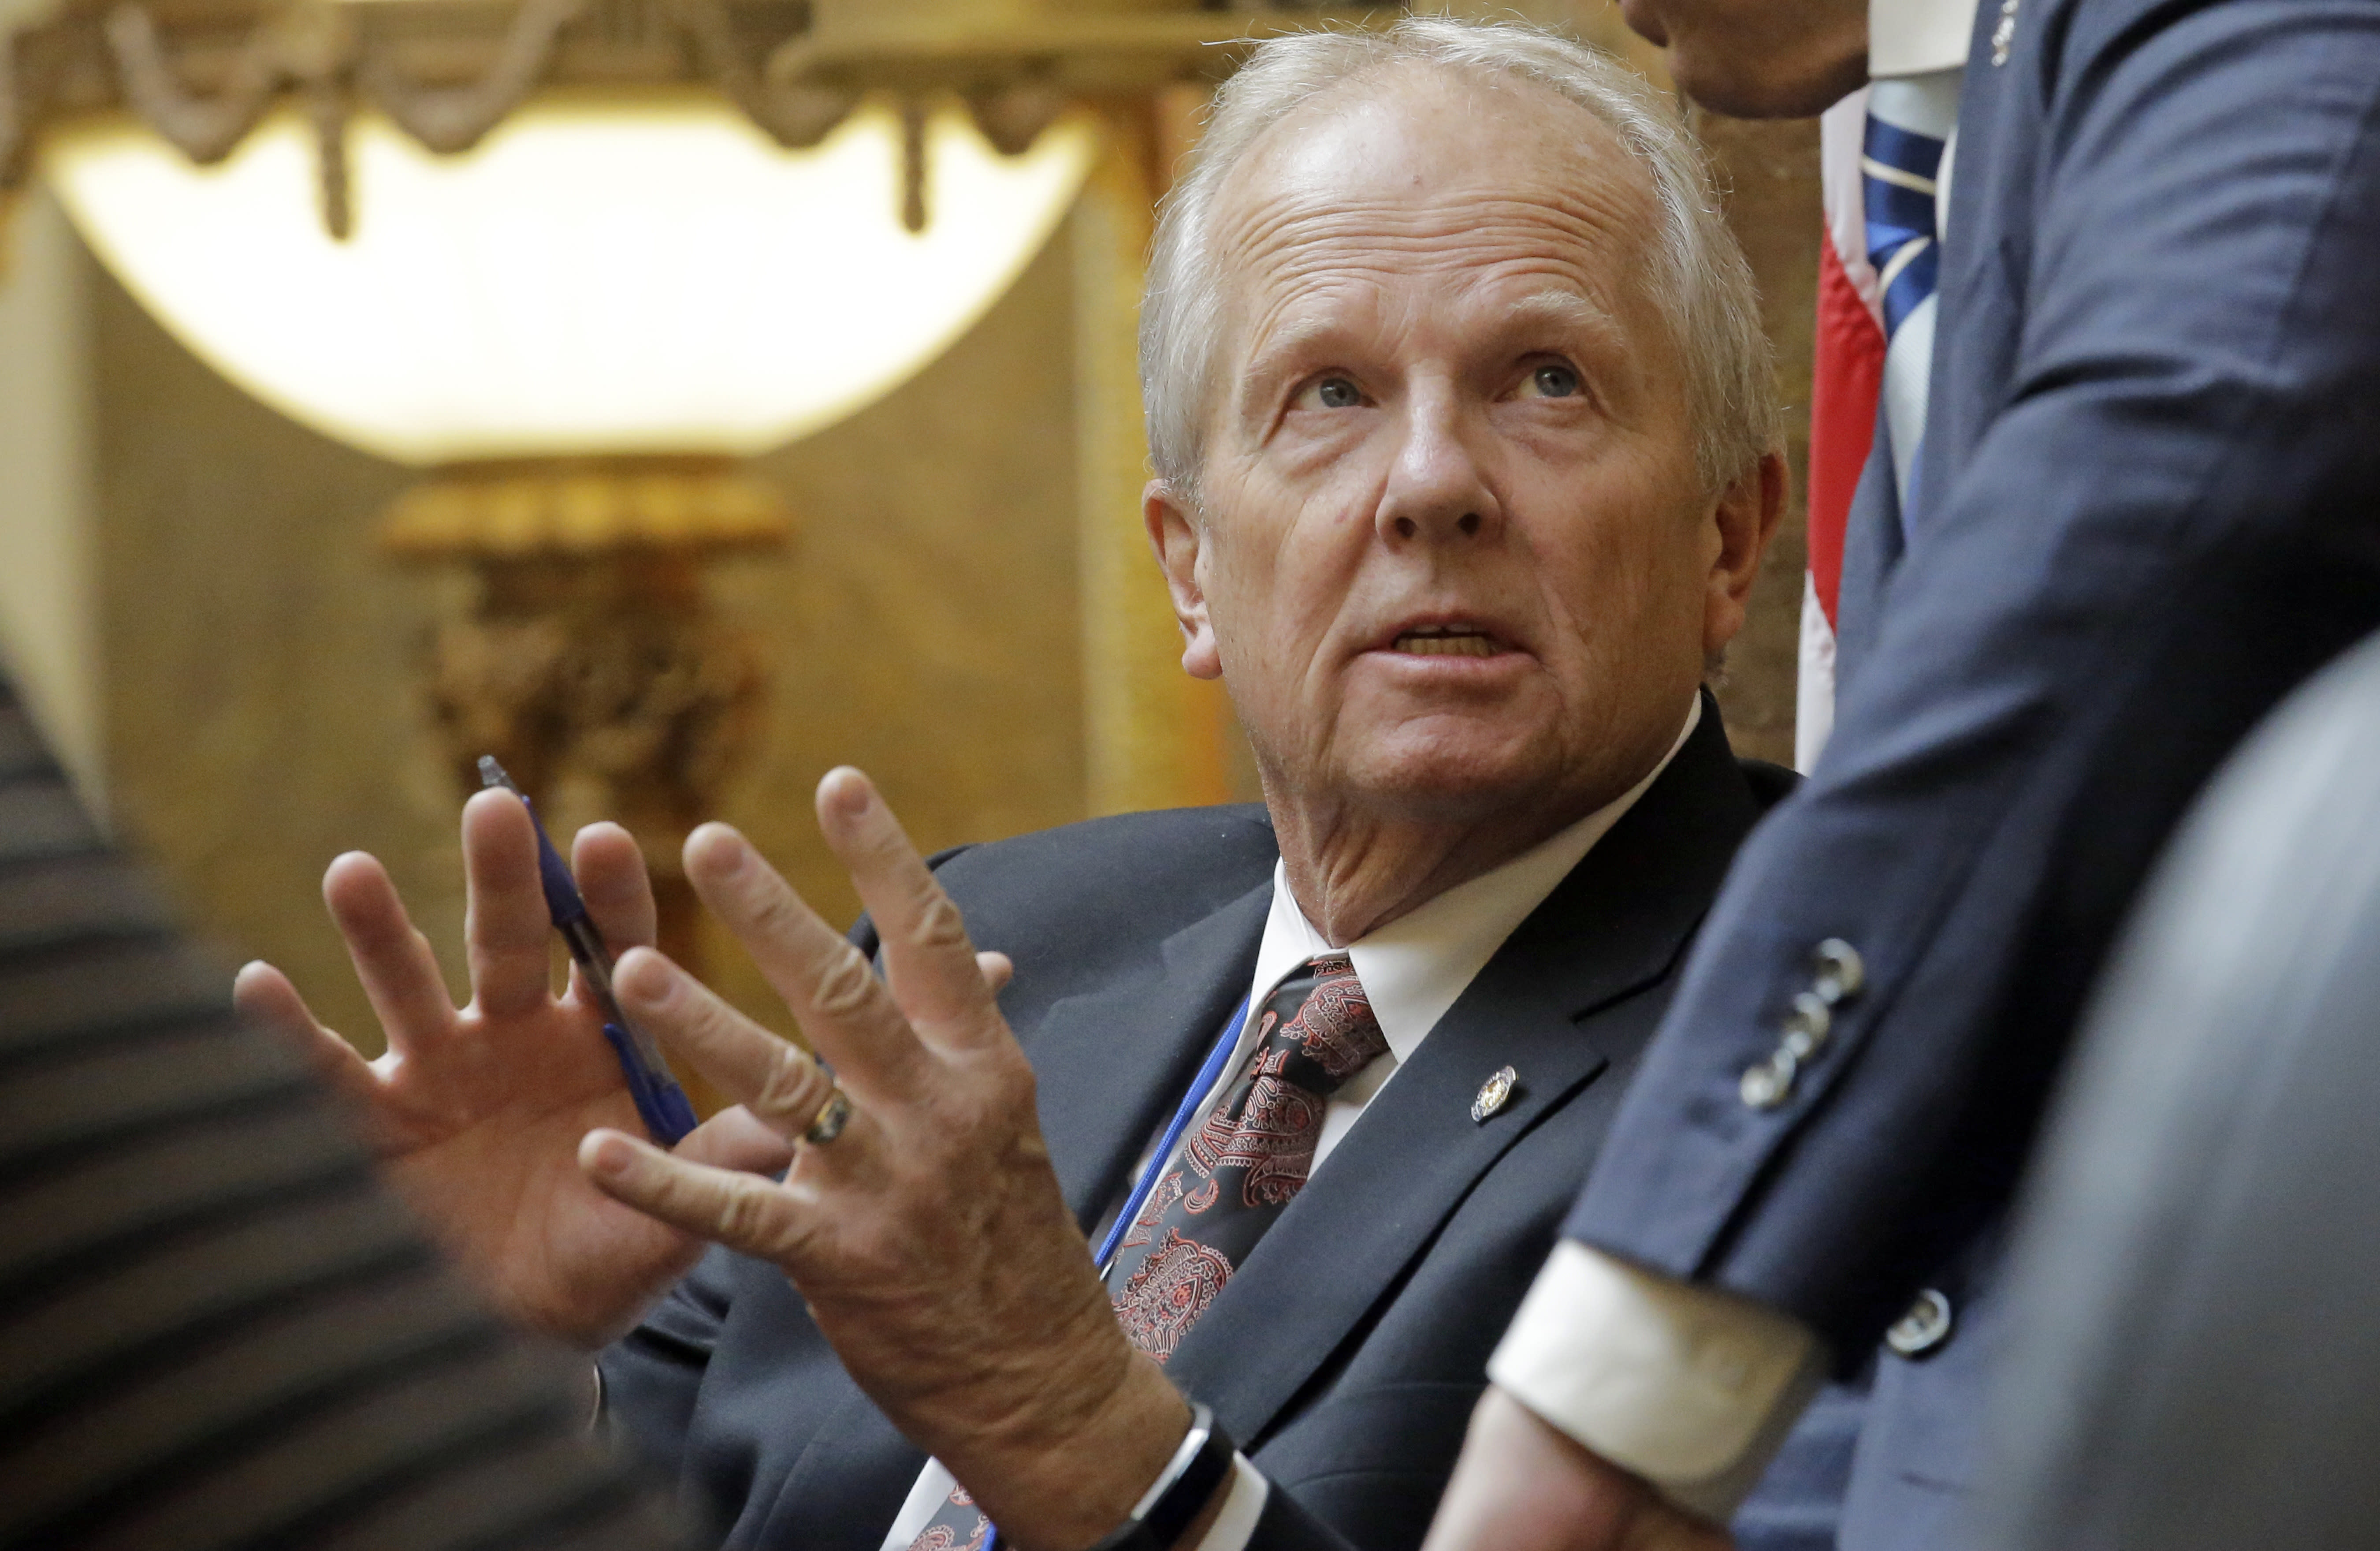 FILE - This Feb. 8, 2017, file photo, Rep. Mike Noel, R-Kanab, speaks on the House floor at the state Capitol in Salt Lake City. An internal watchdog has cleared Interior Secretary Ryan Zinke of wrongdoing following a complaint that he redrew the boundaries of a national monument in Utah to benefit a former state lawmaker and political ally. The Interior Department's office of inspector general says it found no evidence that Zinke gave former state Noel preferential treatment in shrinking the boundaries of Utah's Grand Staircase-Escalante National Monument.(AP Photo/Rick Bowmer, File)